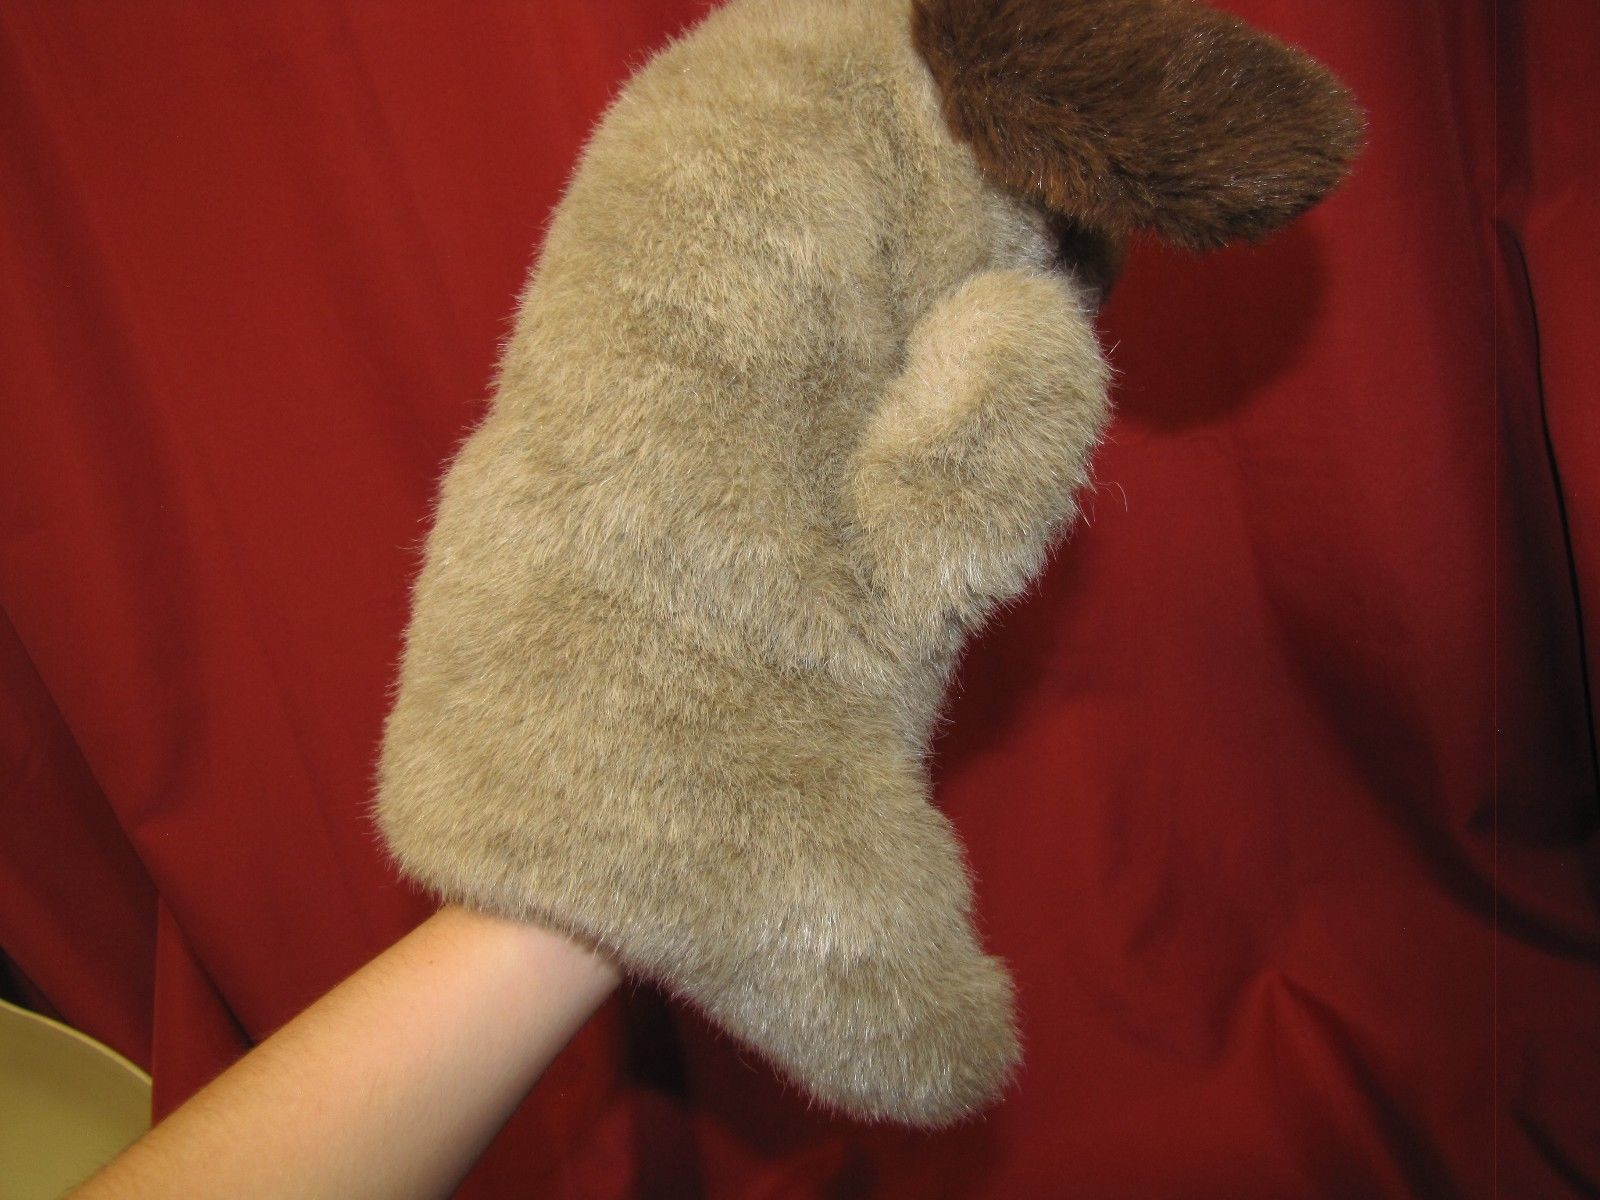 COMMONWEALTH STUFFED PLUSH HAND PUPPET HUG A PLUSH 1989 TAN BROWN PUPPY DOG image 5